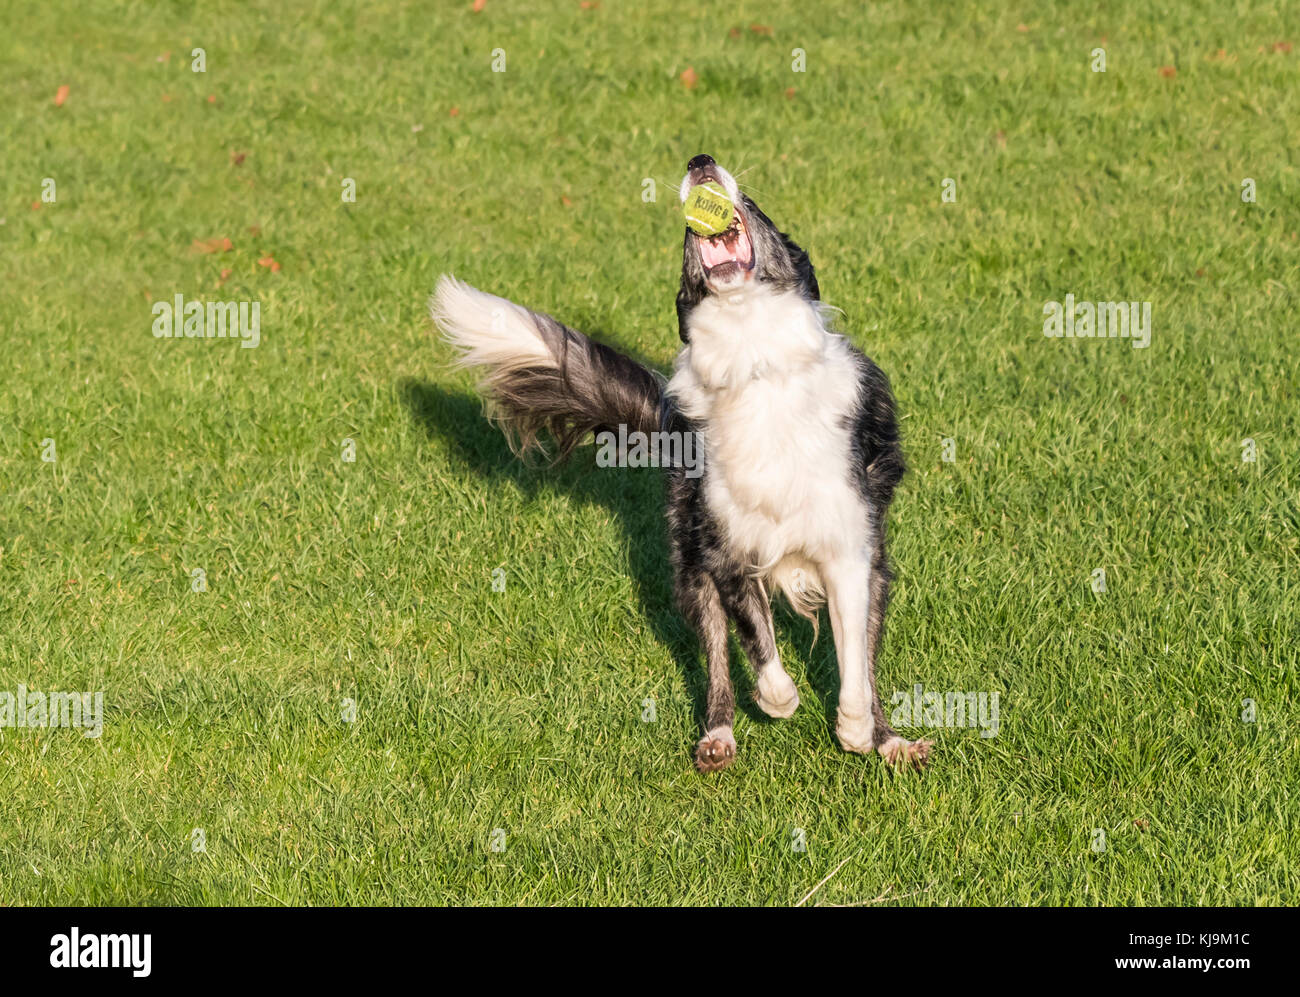 A sheepdog playing with a ball and catching it in it's mouth. - Stock Image